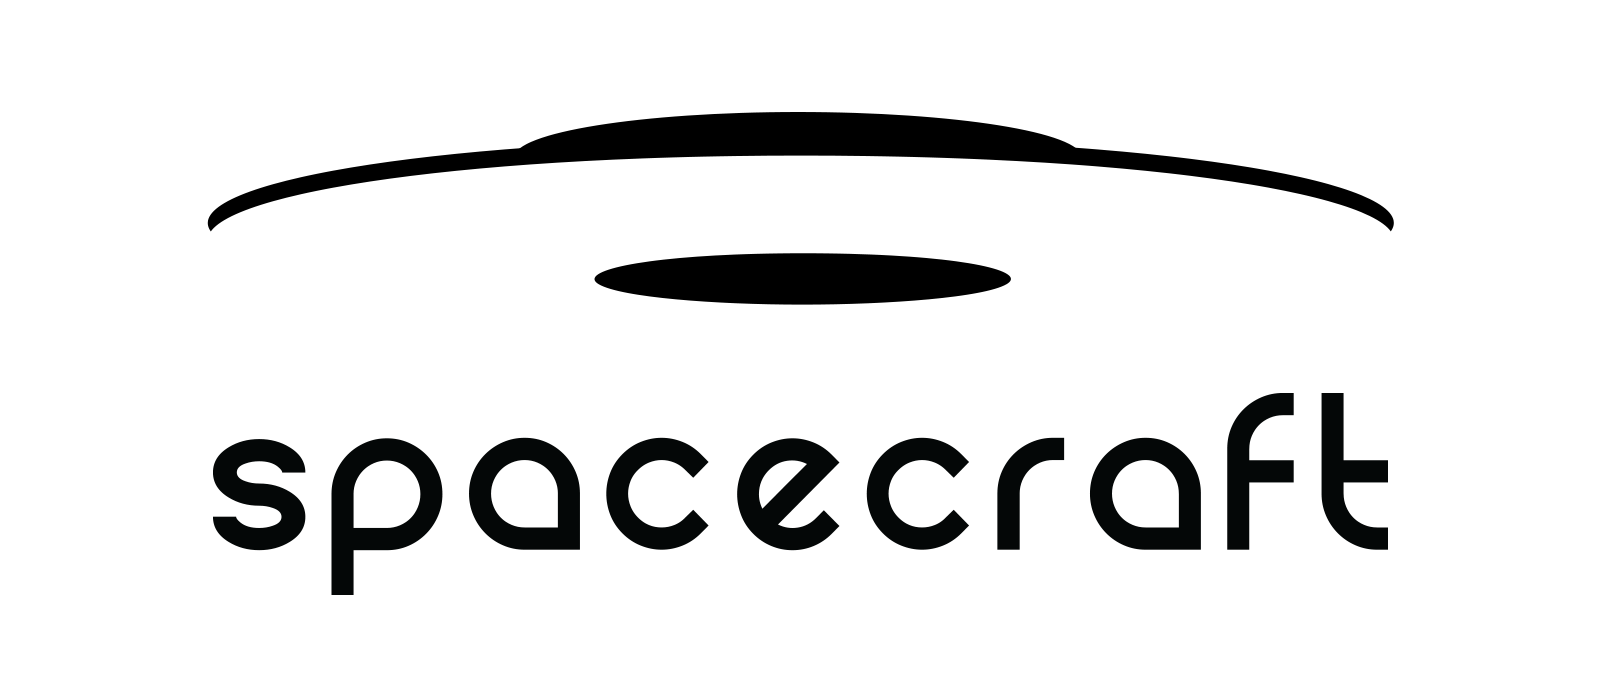 spacecraft-logo-sombrero